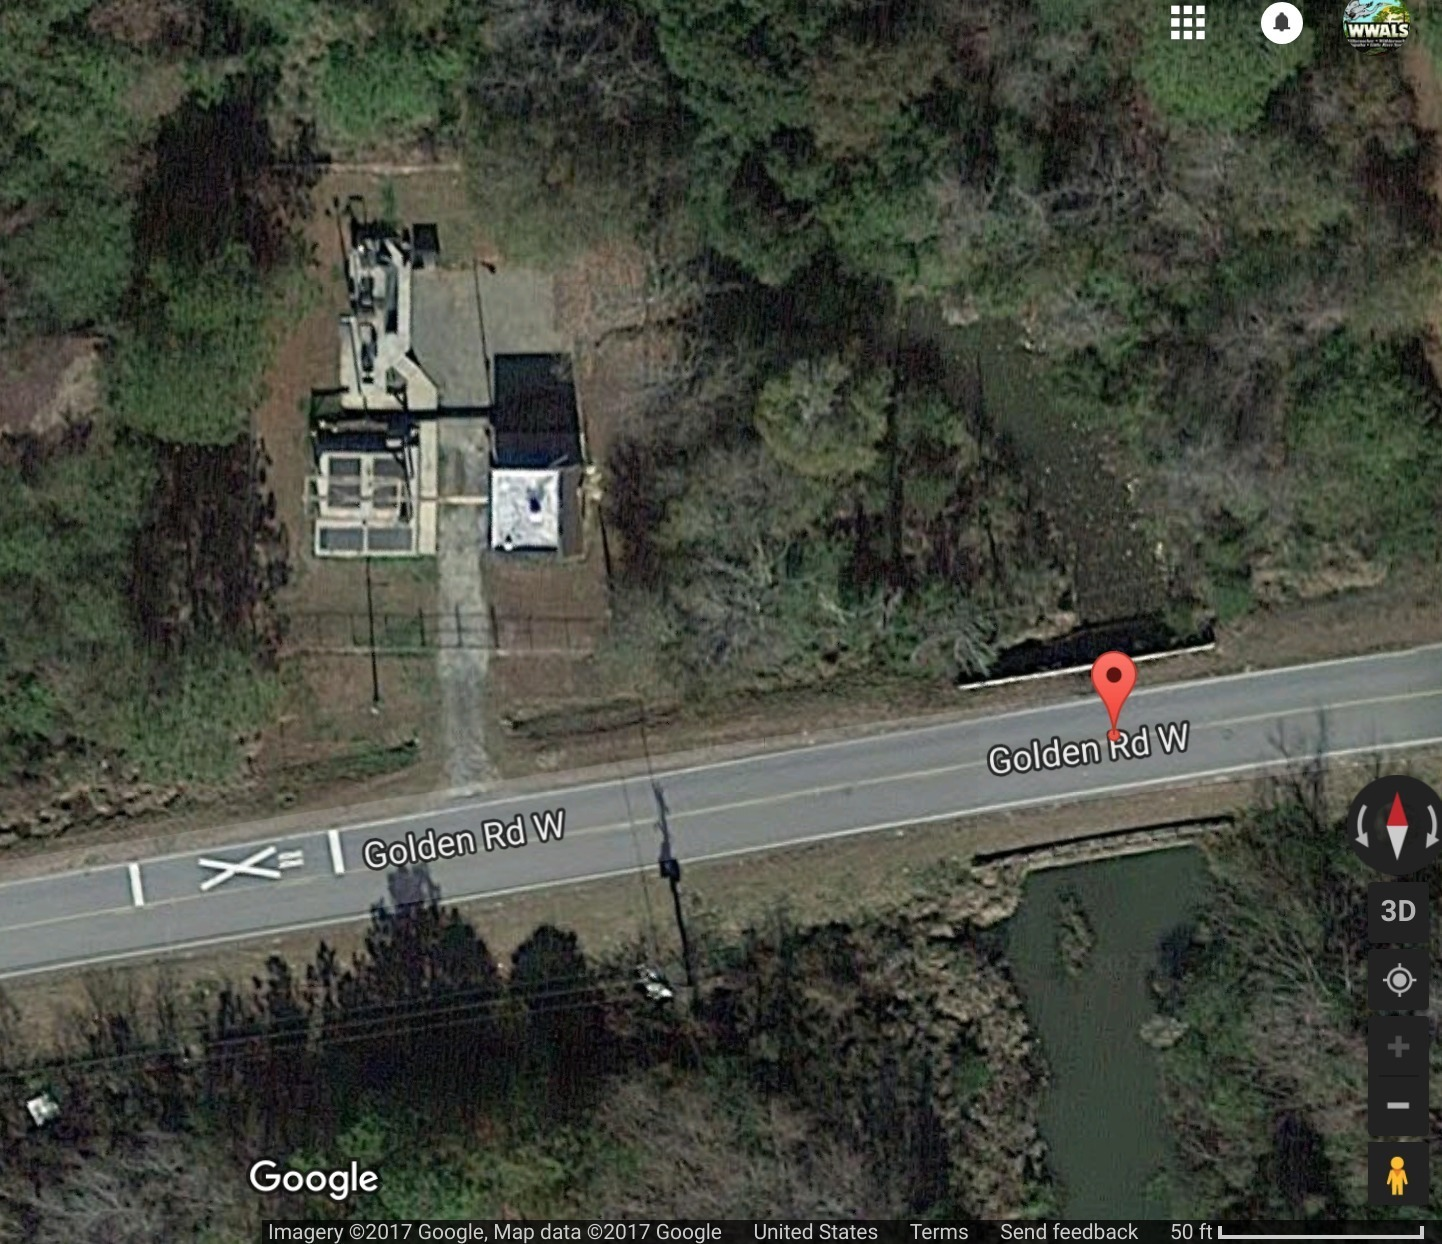 1442x1244 Map View, Golden Road Lift Station, in Cow House Branch Lift Station Spill in Tifton, GA, by John S. Quarterman, for WWALS.net, 11 September 2017